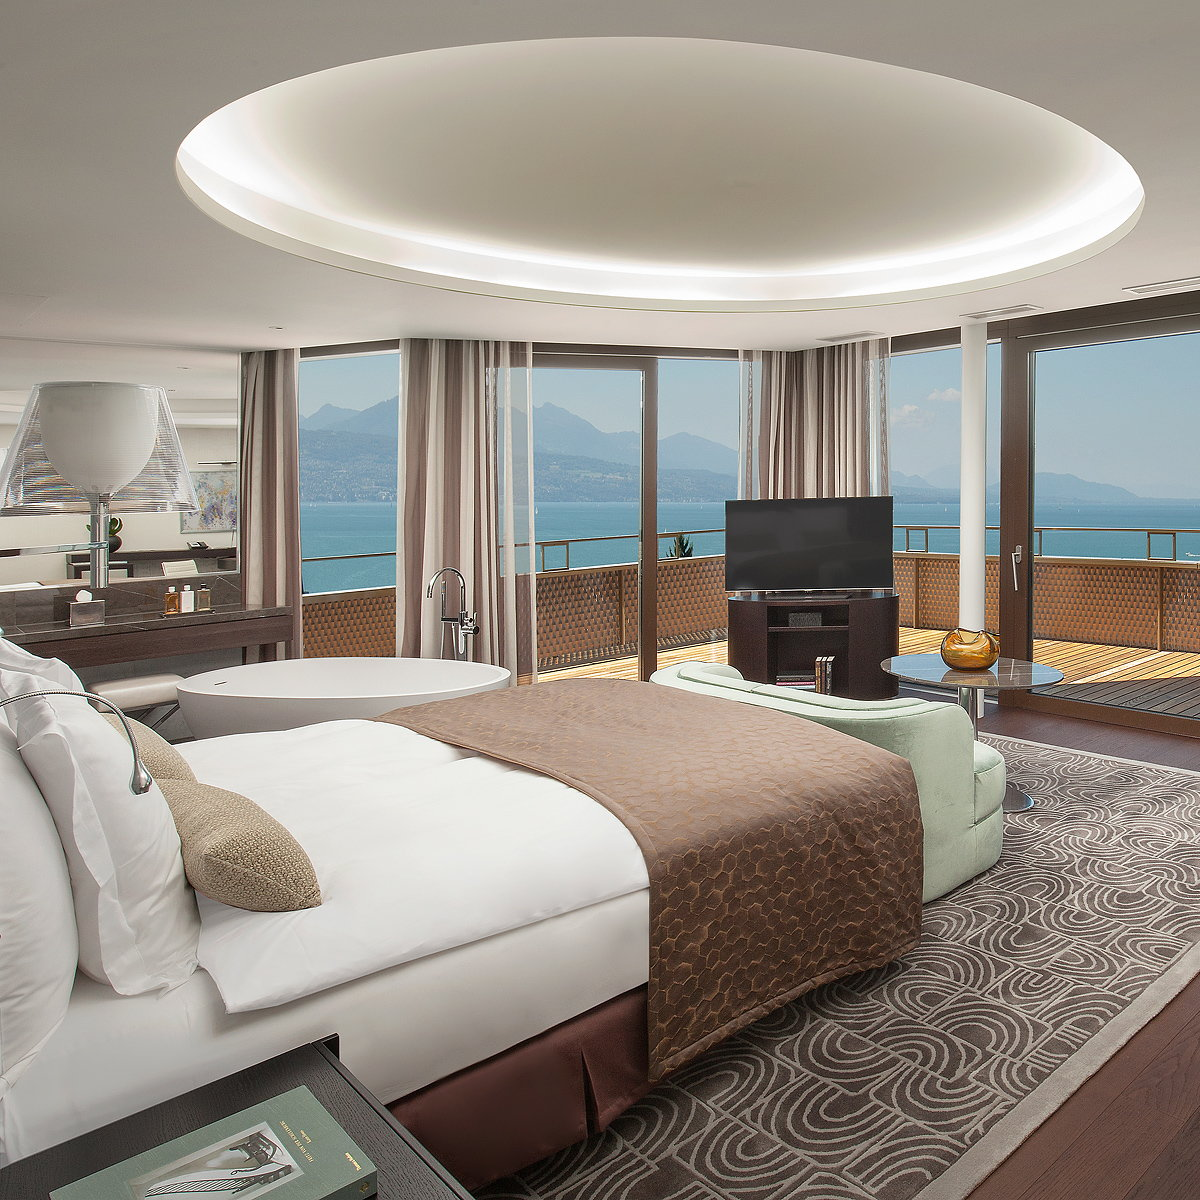 Lausanne's Hotel Royal Savoy Officially Re-opens with Interiors by MKV Design